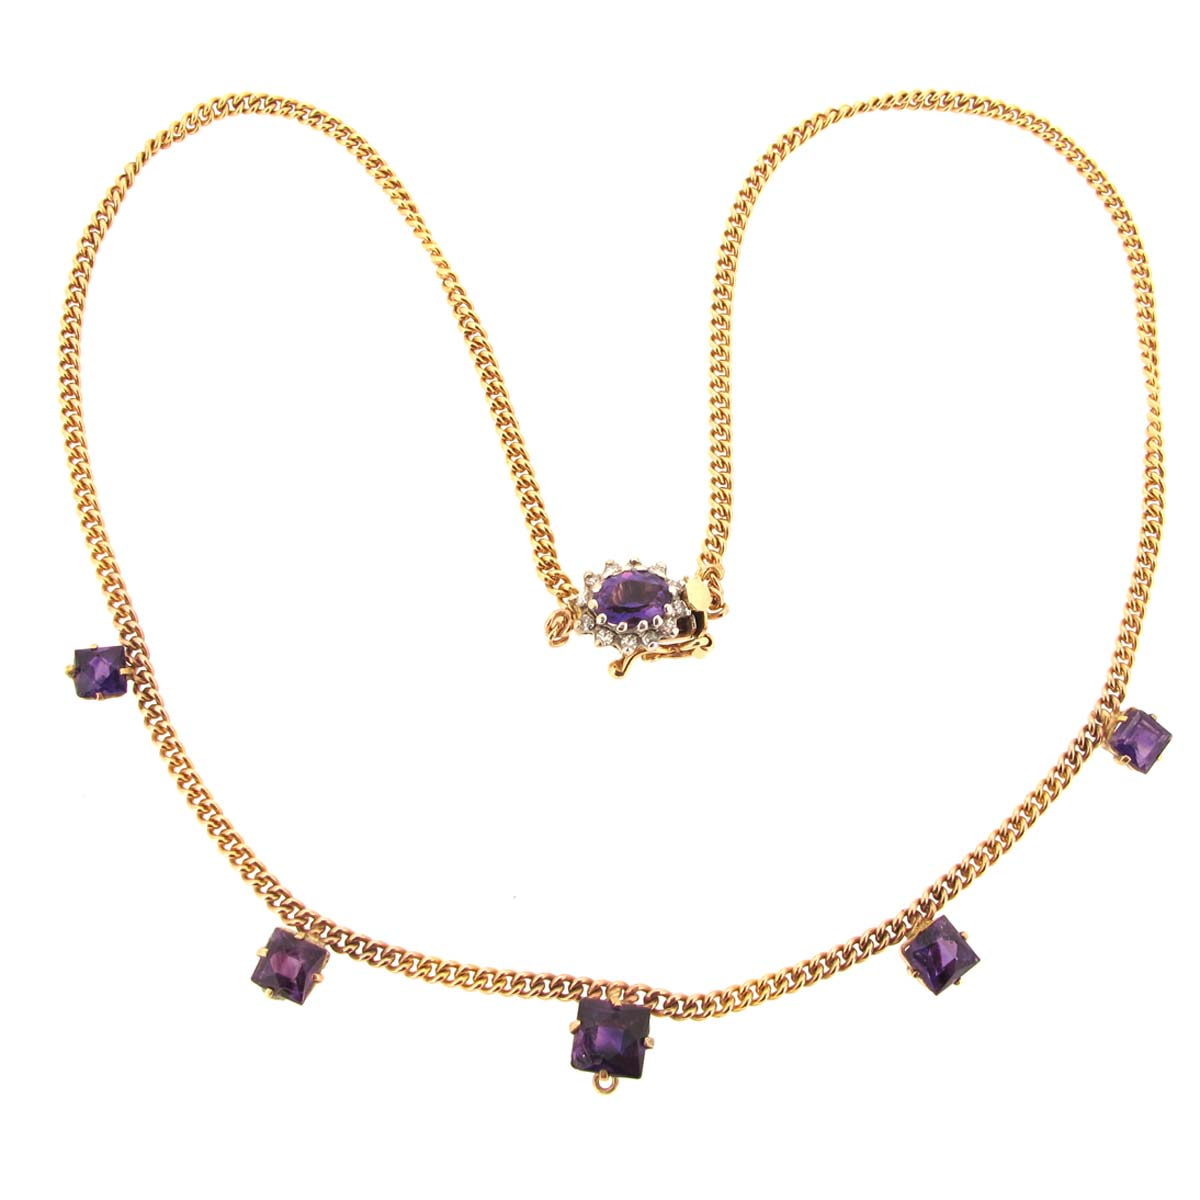 gold, amethyst & diamond necklace